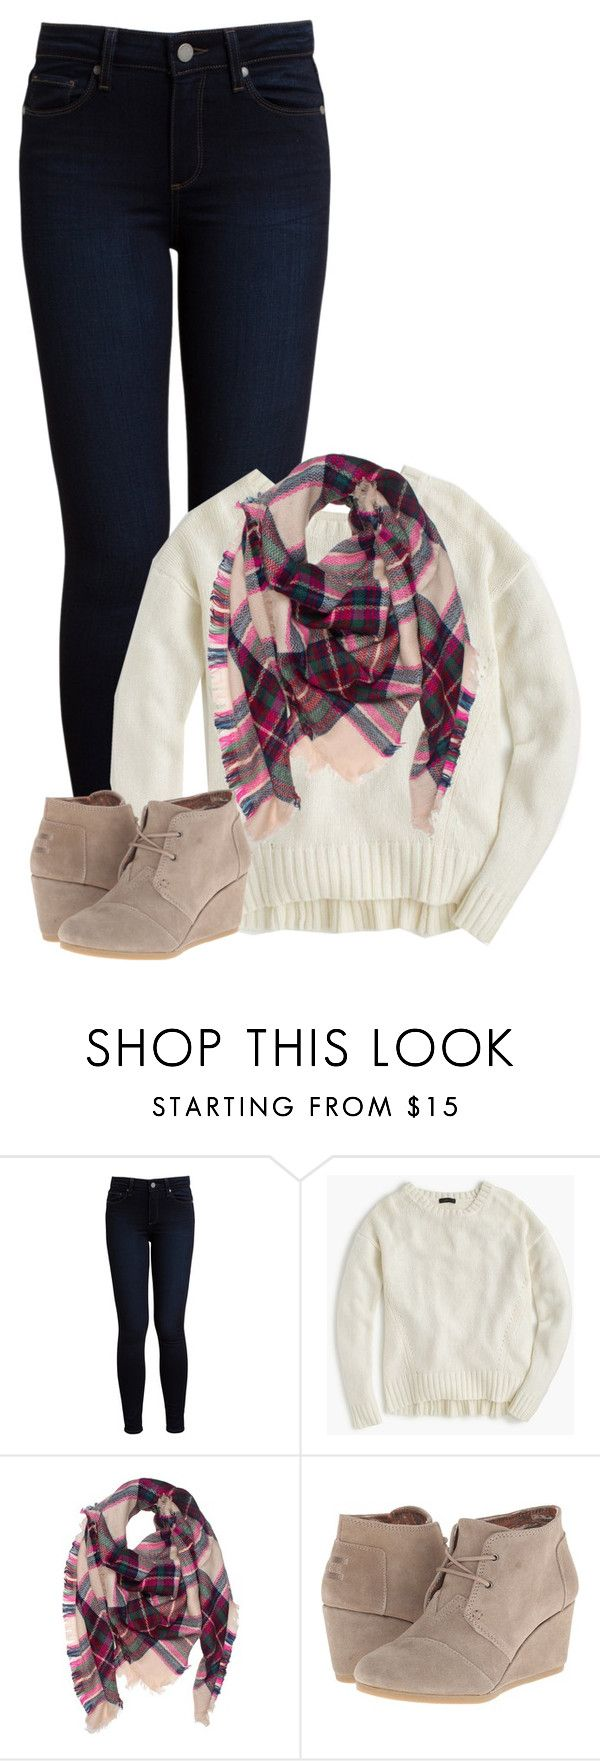 """""""// No school again //"""" by morgantaylor37 ❤ liked on Polyvore featuring Paige Denim, J.Crew and TOMS"""